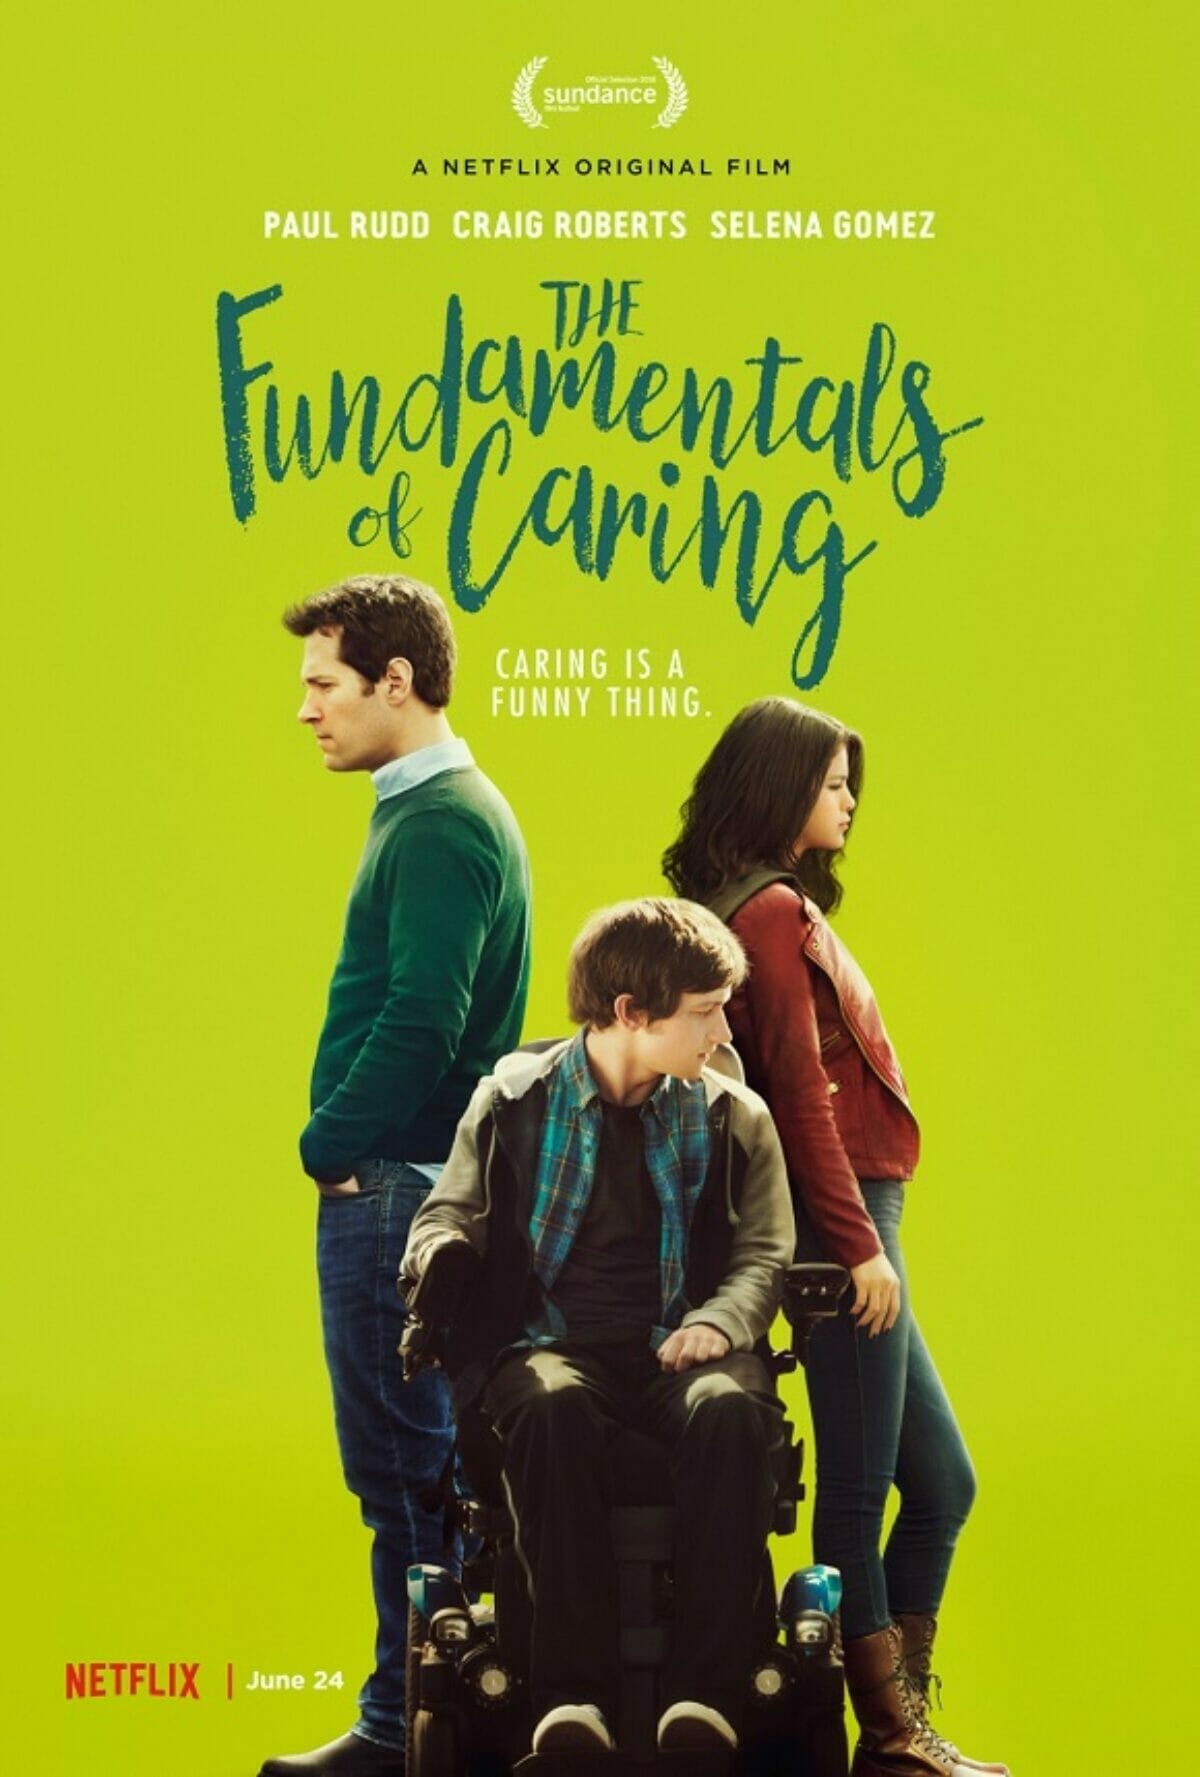 The-fundamentals_of_caring_poster